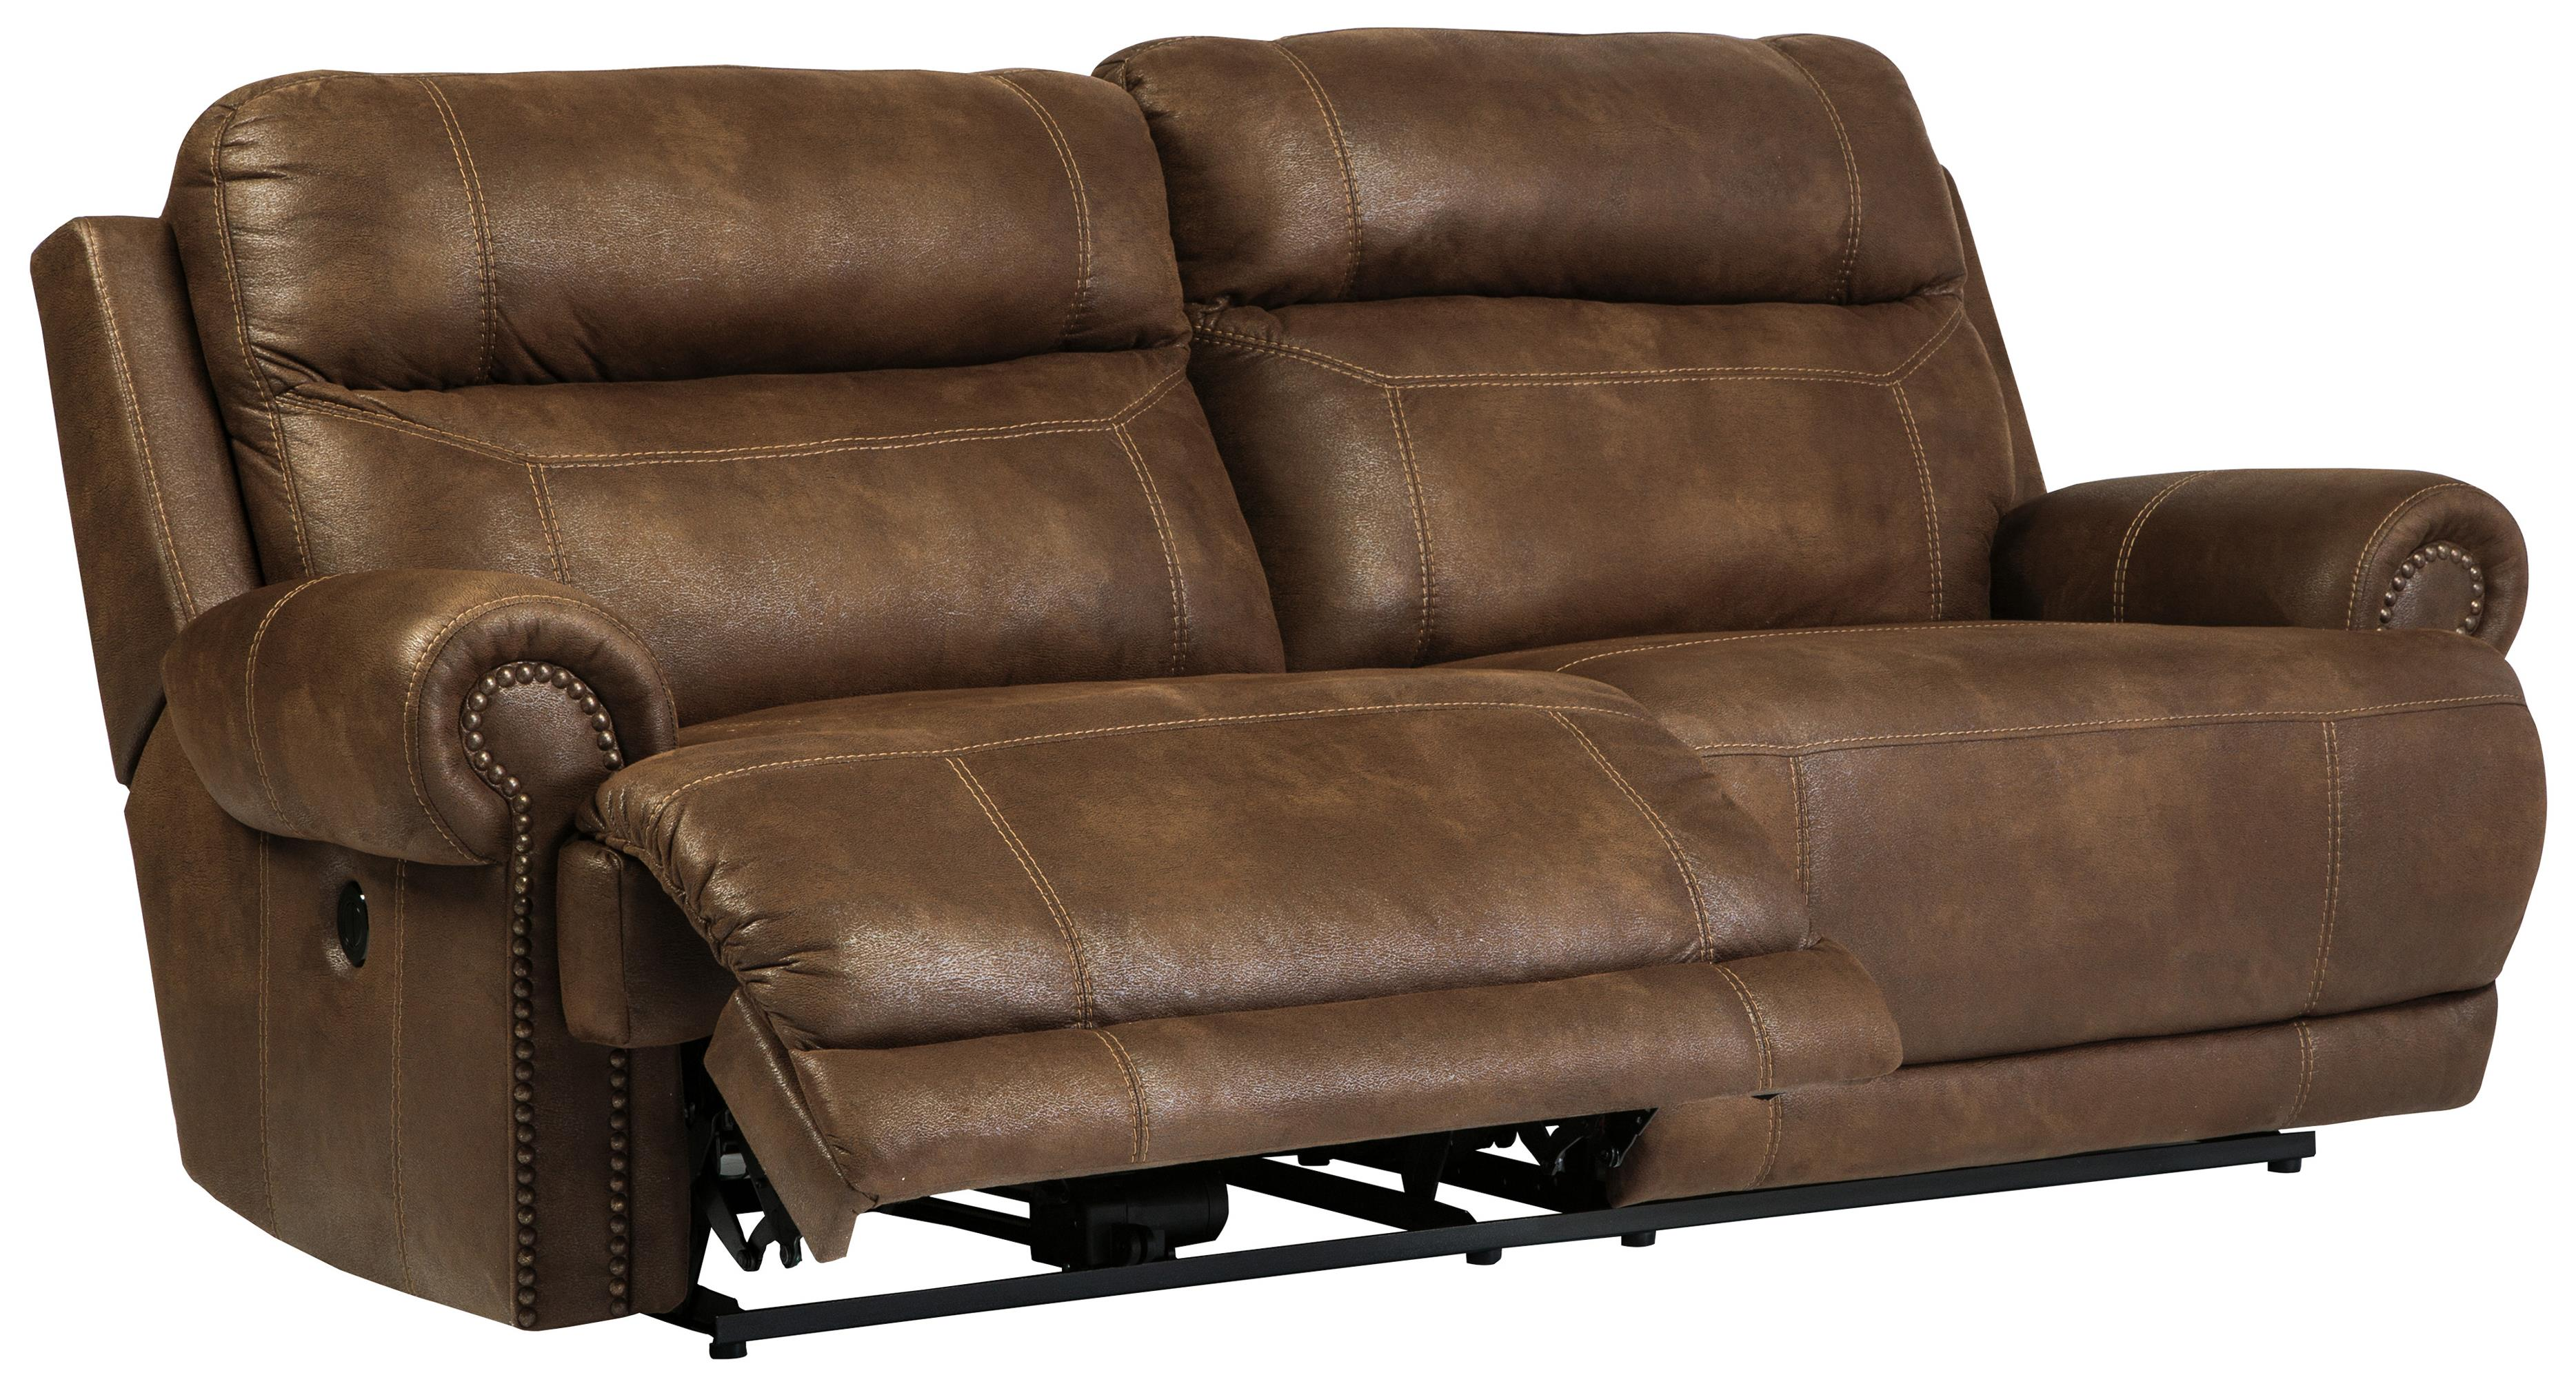 rolled arm sofa with nailhead trim leather ling off repair 2 seat reclining power arms